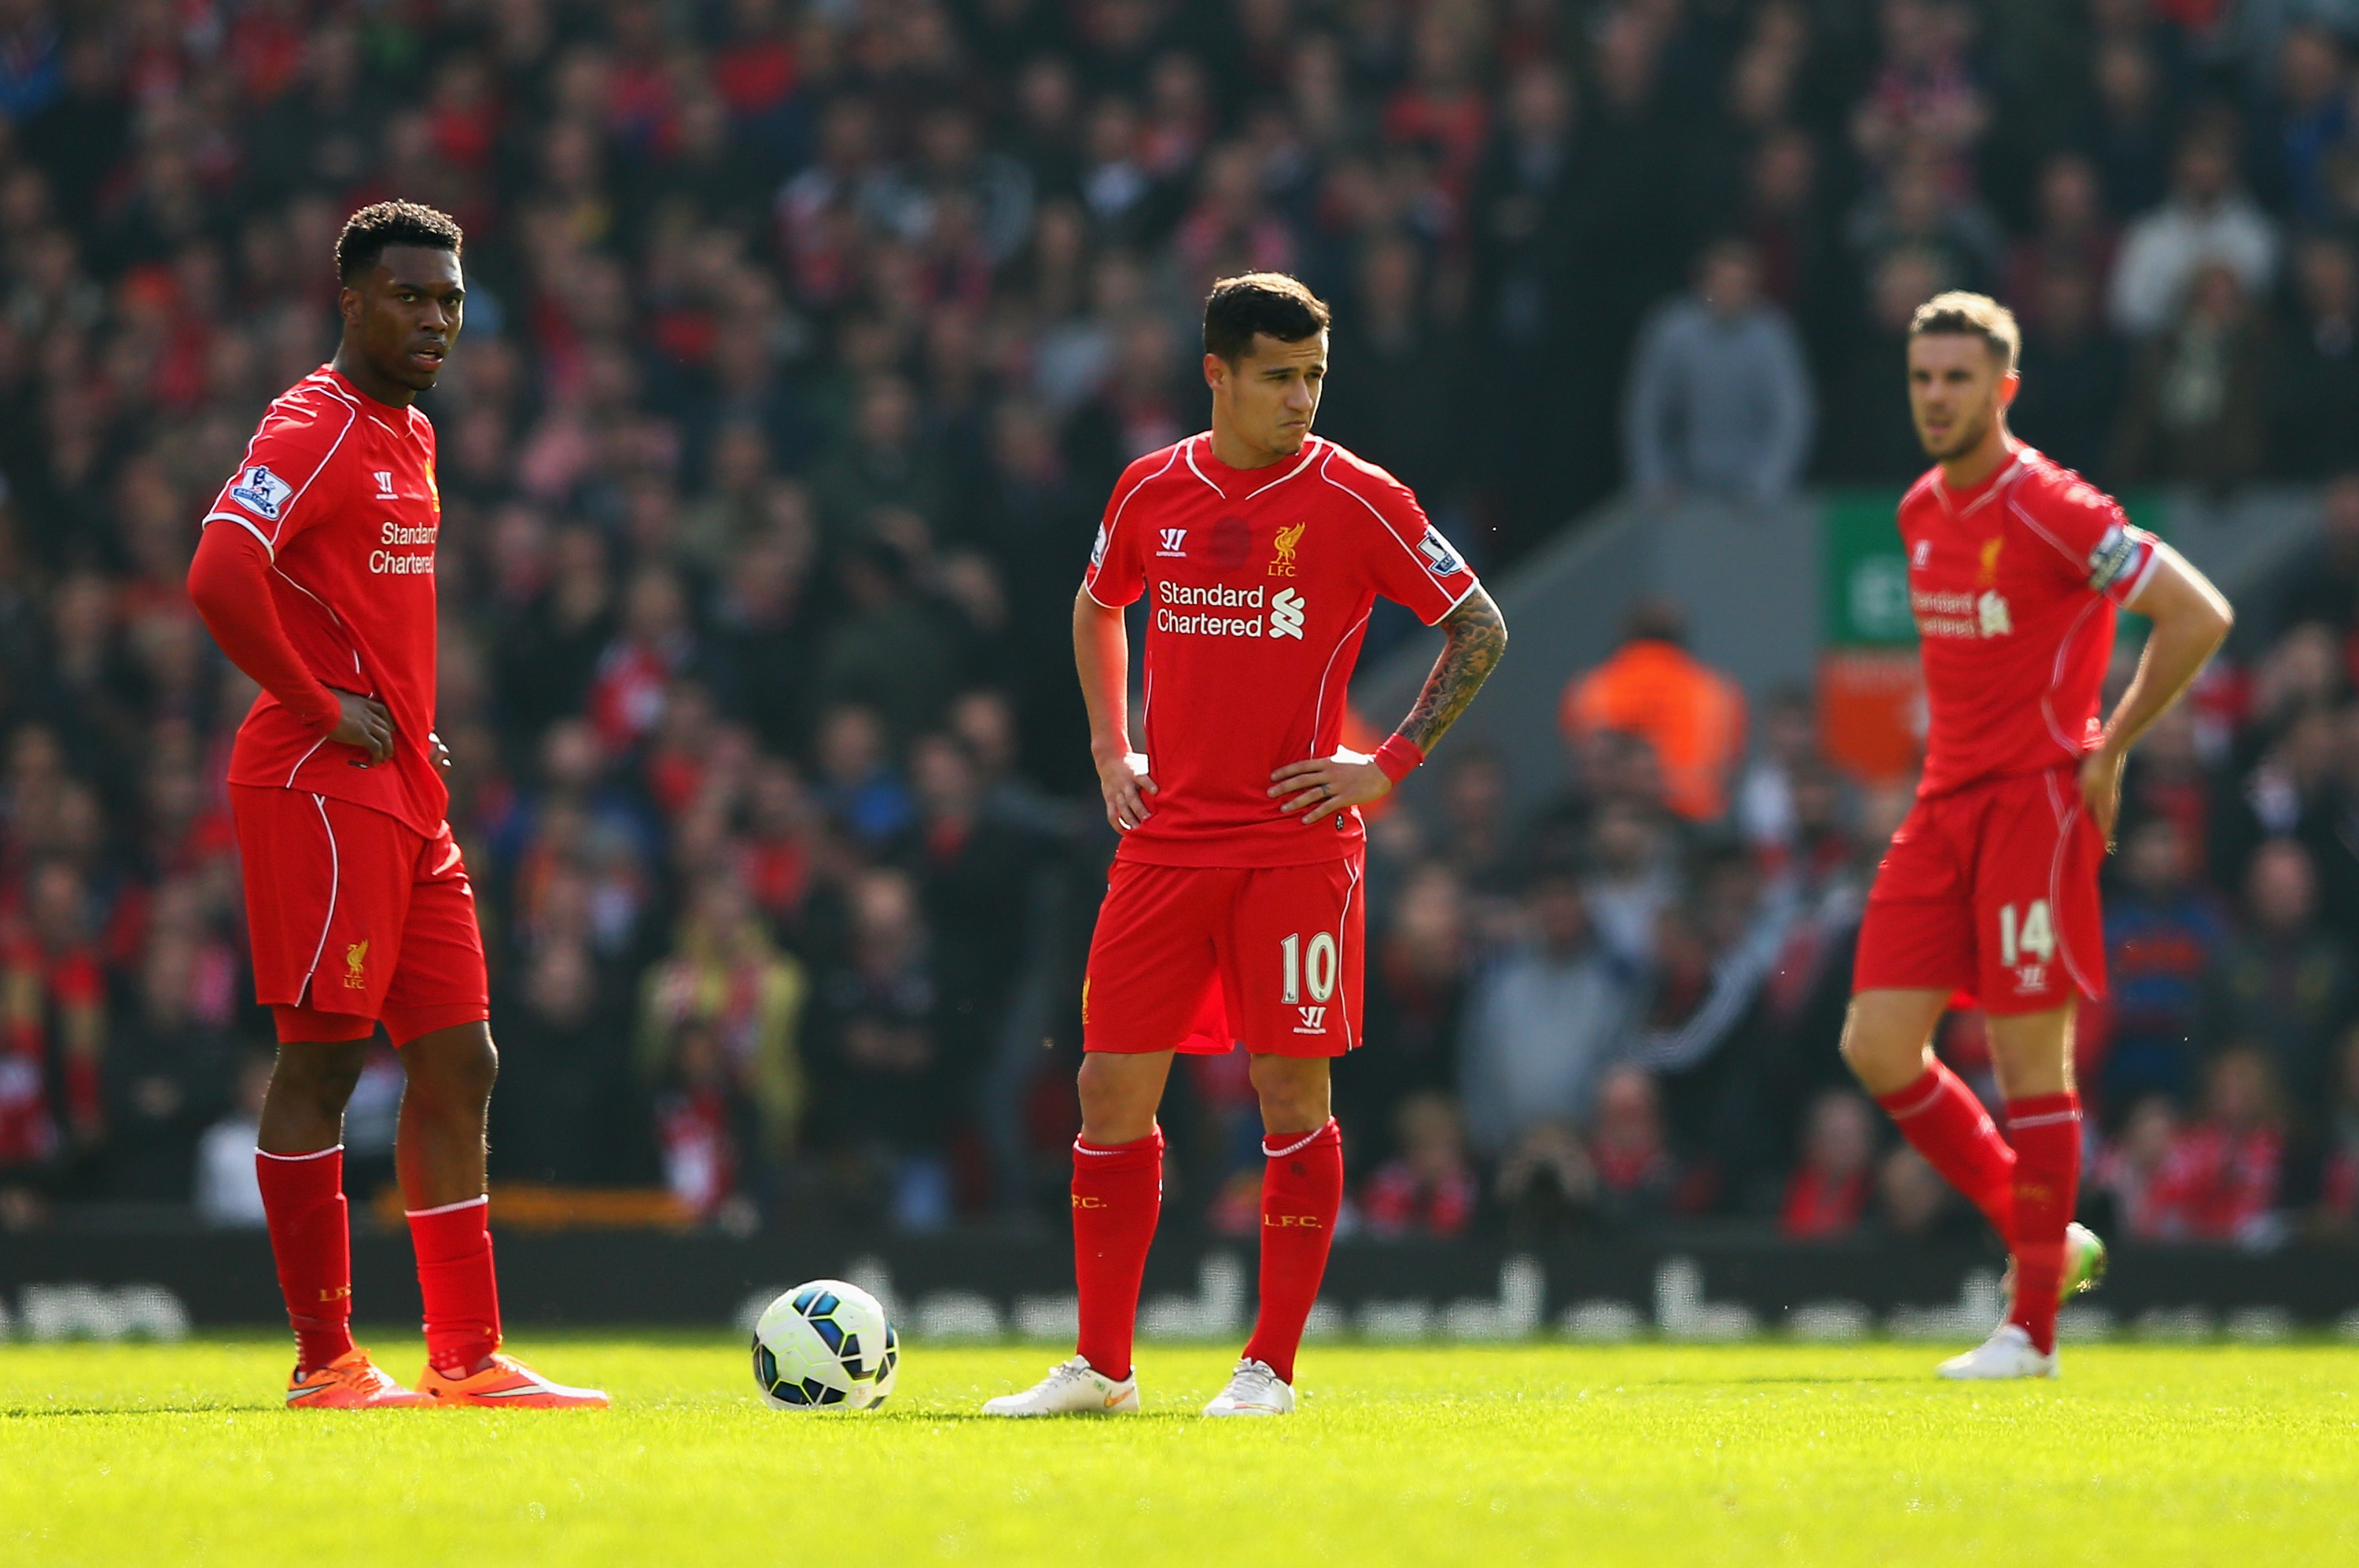 Klopp Wants to Play Sturridge, Coutinho, and Origi Against West Ham in FA Cup Replay